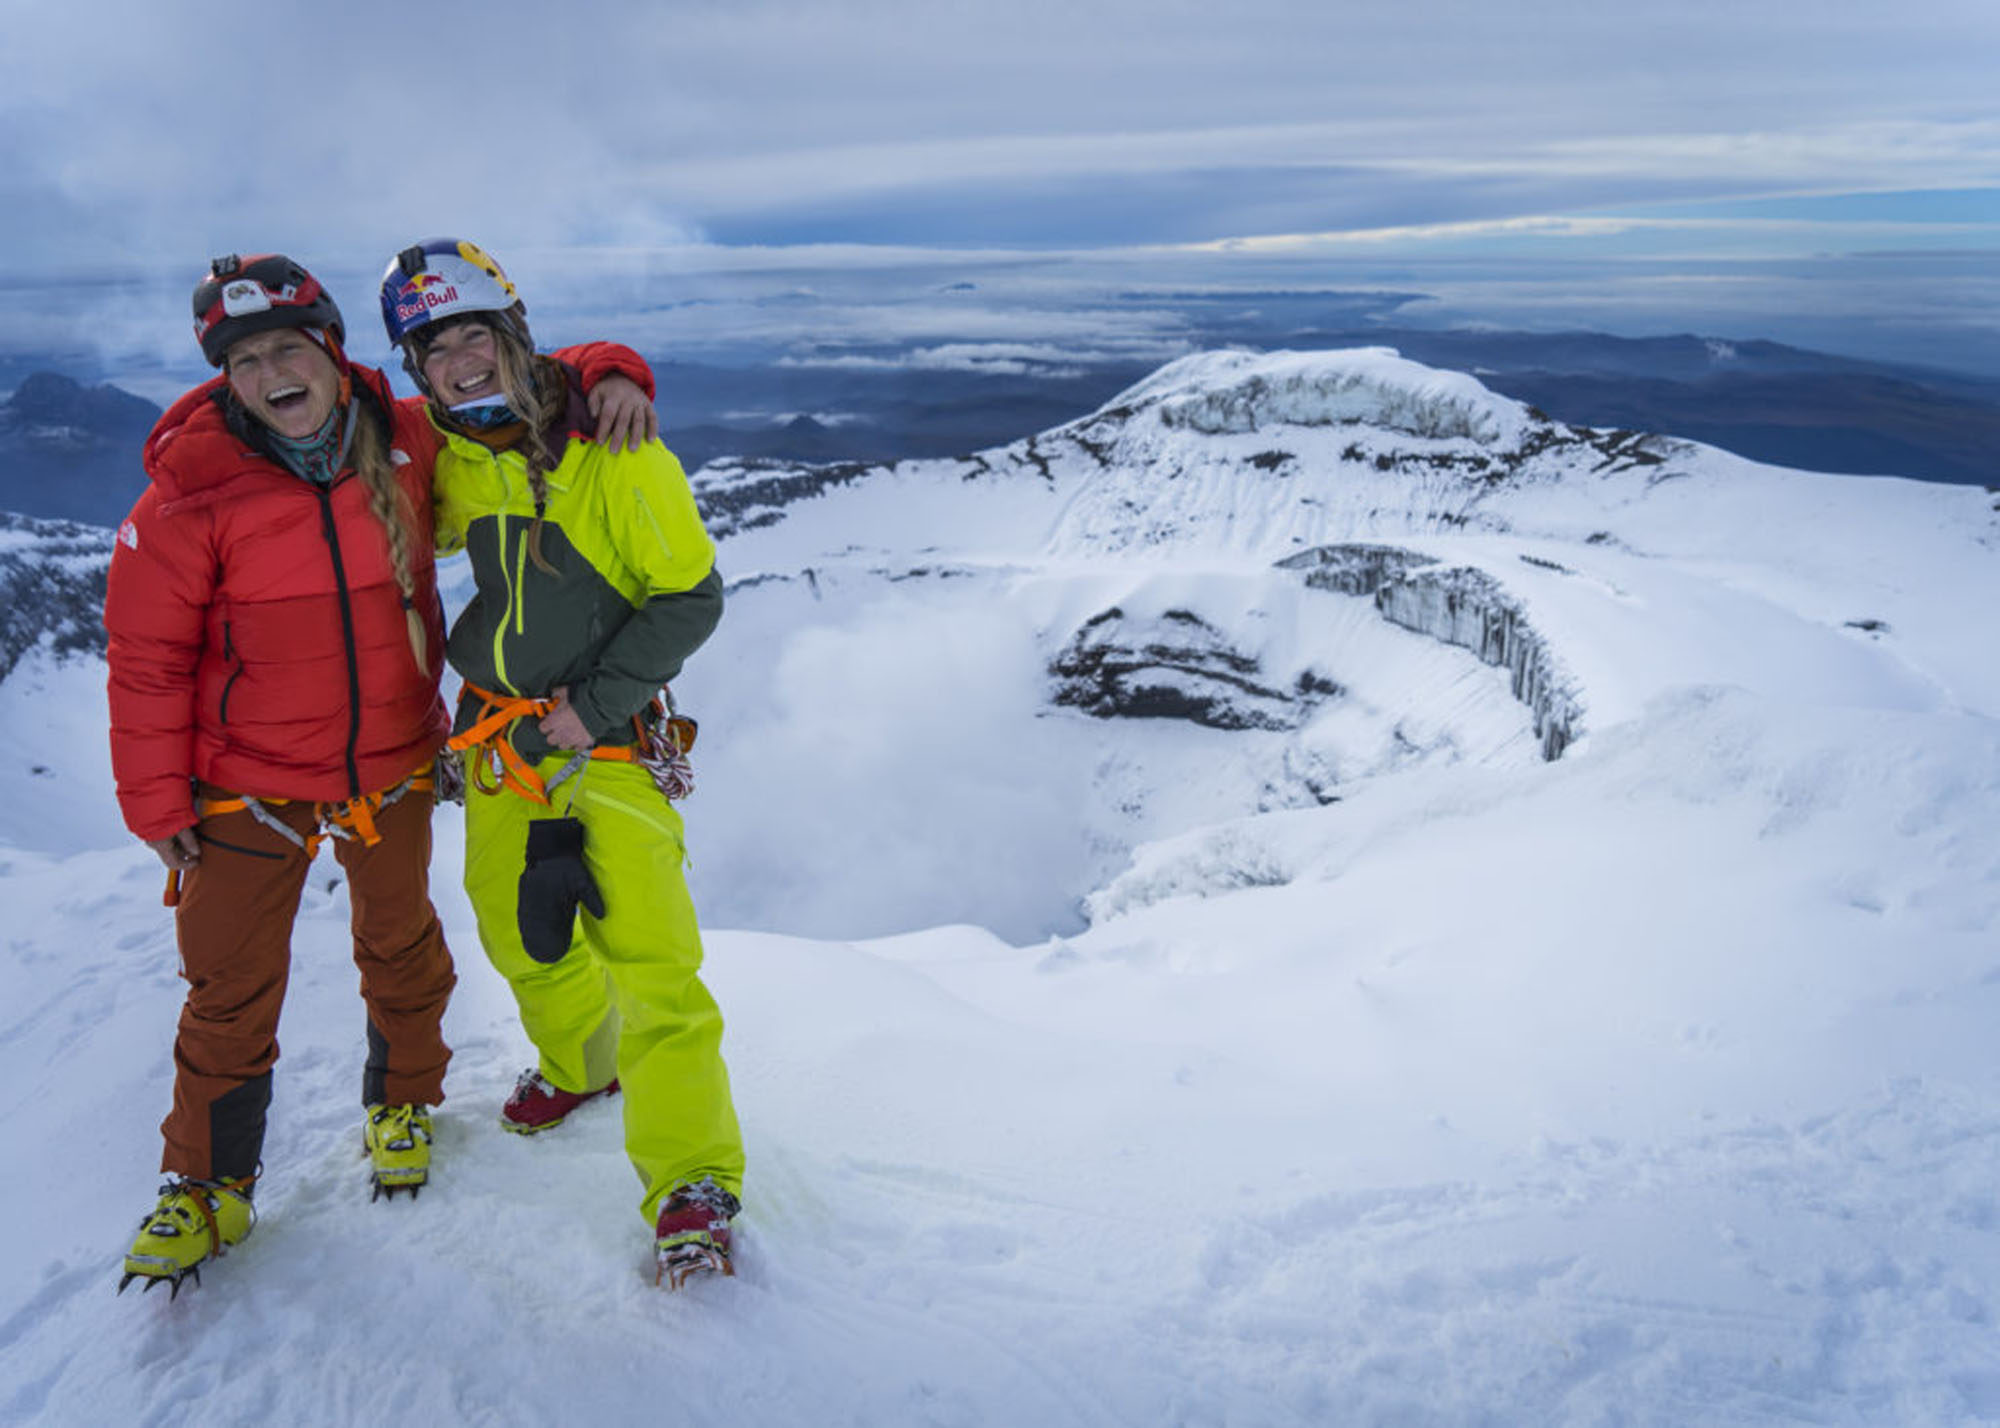 Emily Harrington und Michelle Parker am Gipfel des Cotopaxi ©Emily Harrington